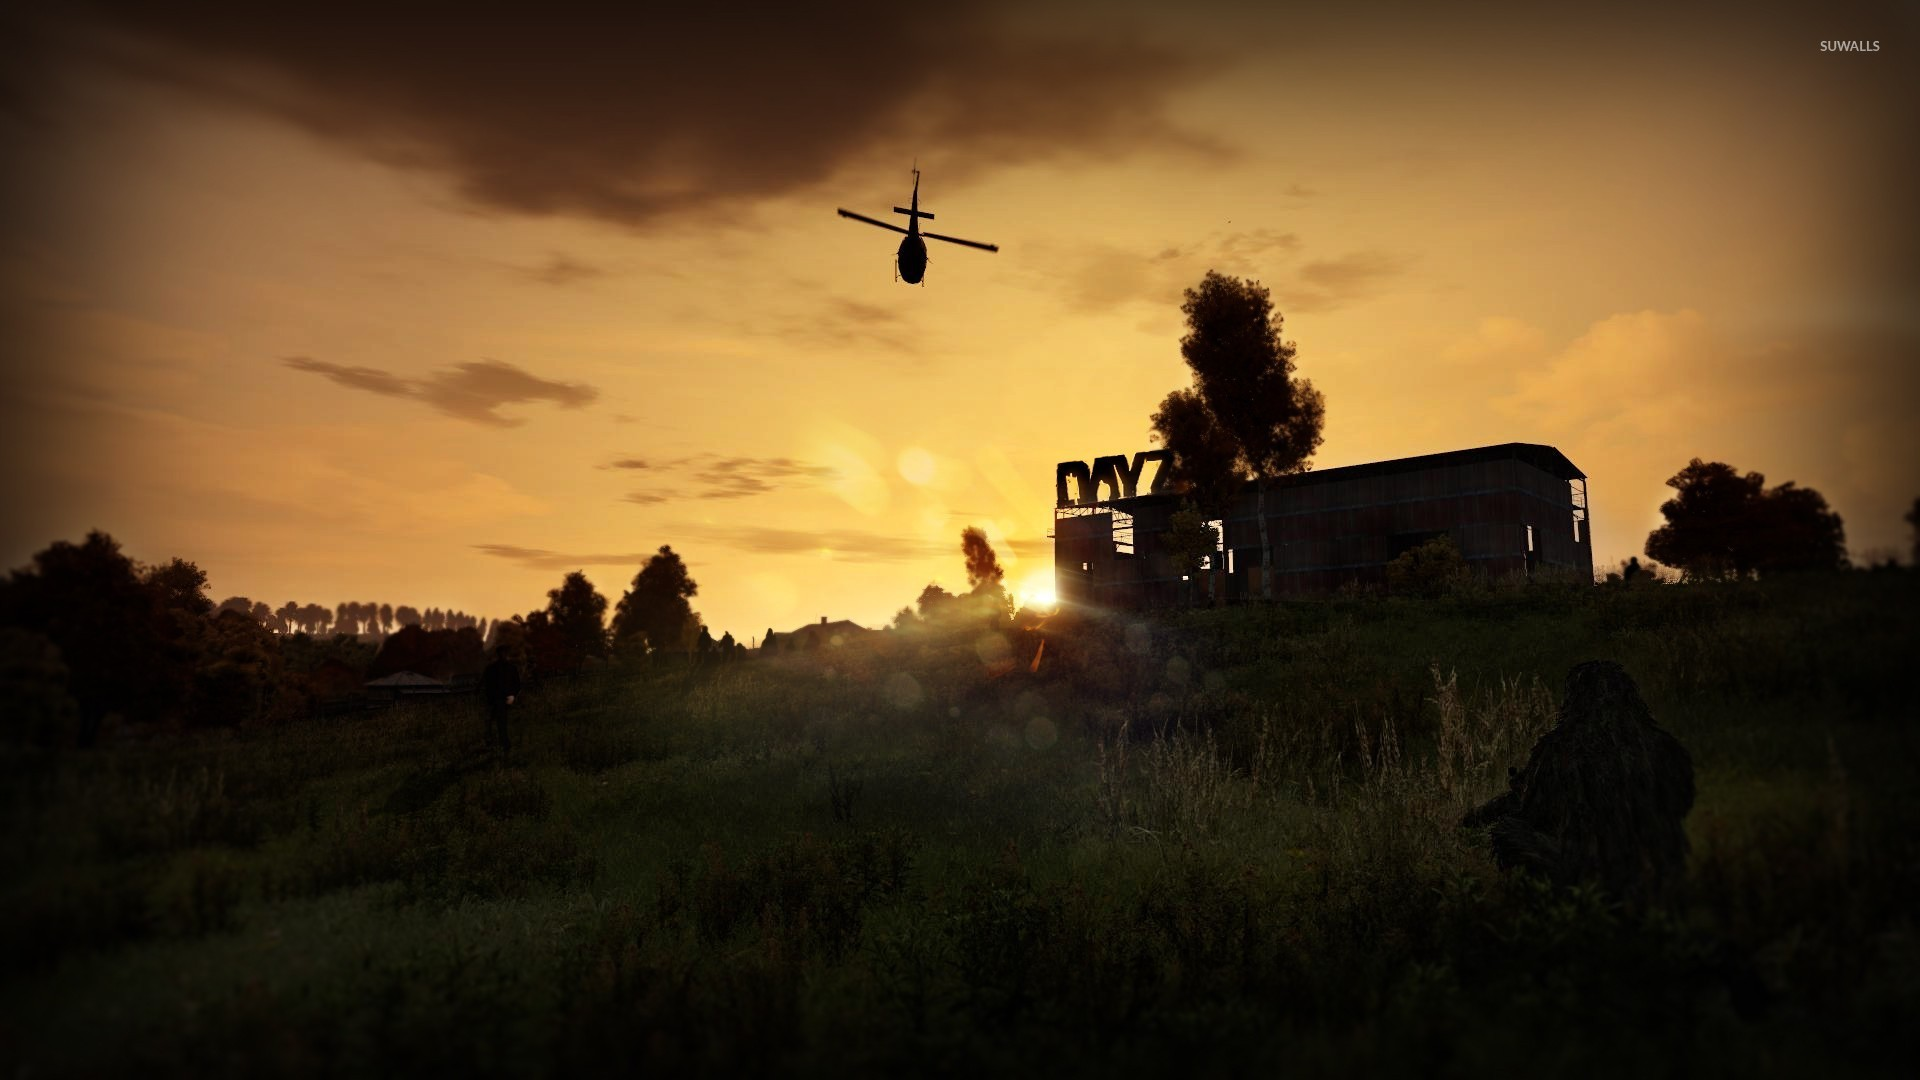 Free Download Dayz 4 Wallpaper Dayz Mod Loading Screen 298710 Hd 1920x1080 For Your Desktop Mobile Tablet Explore 53 Dayz Wallpaper Dayz Wallpaper